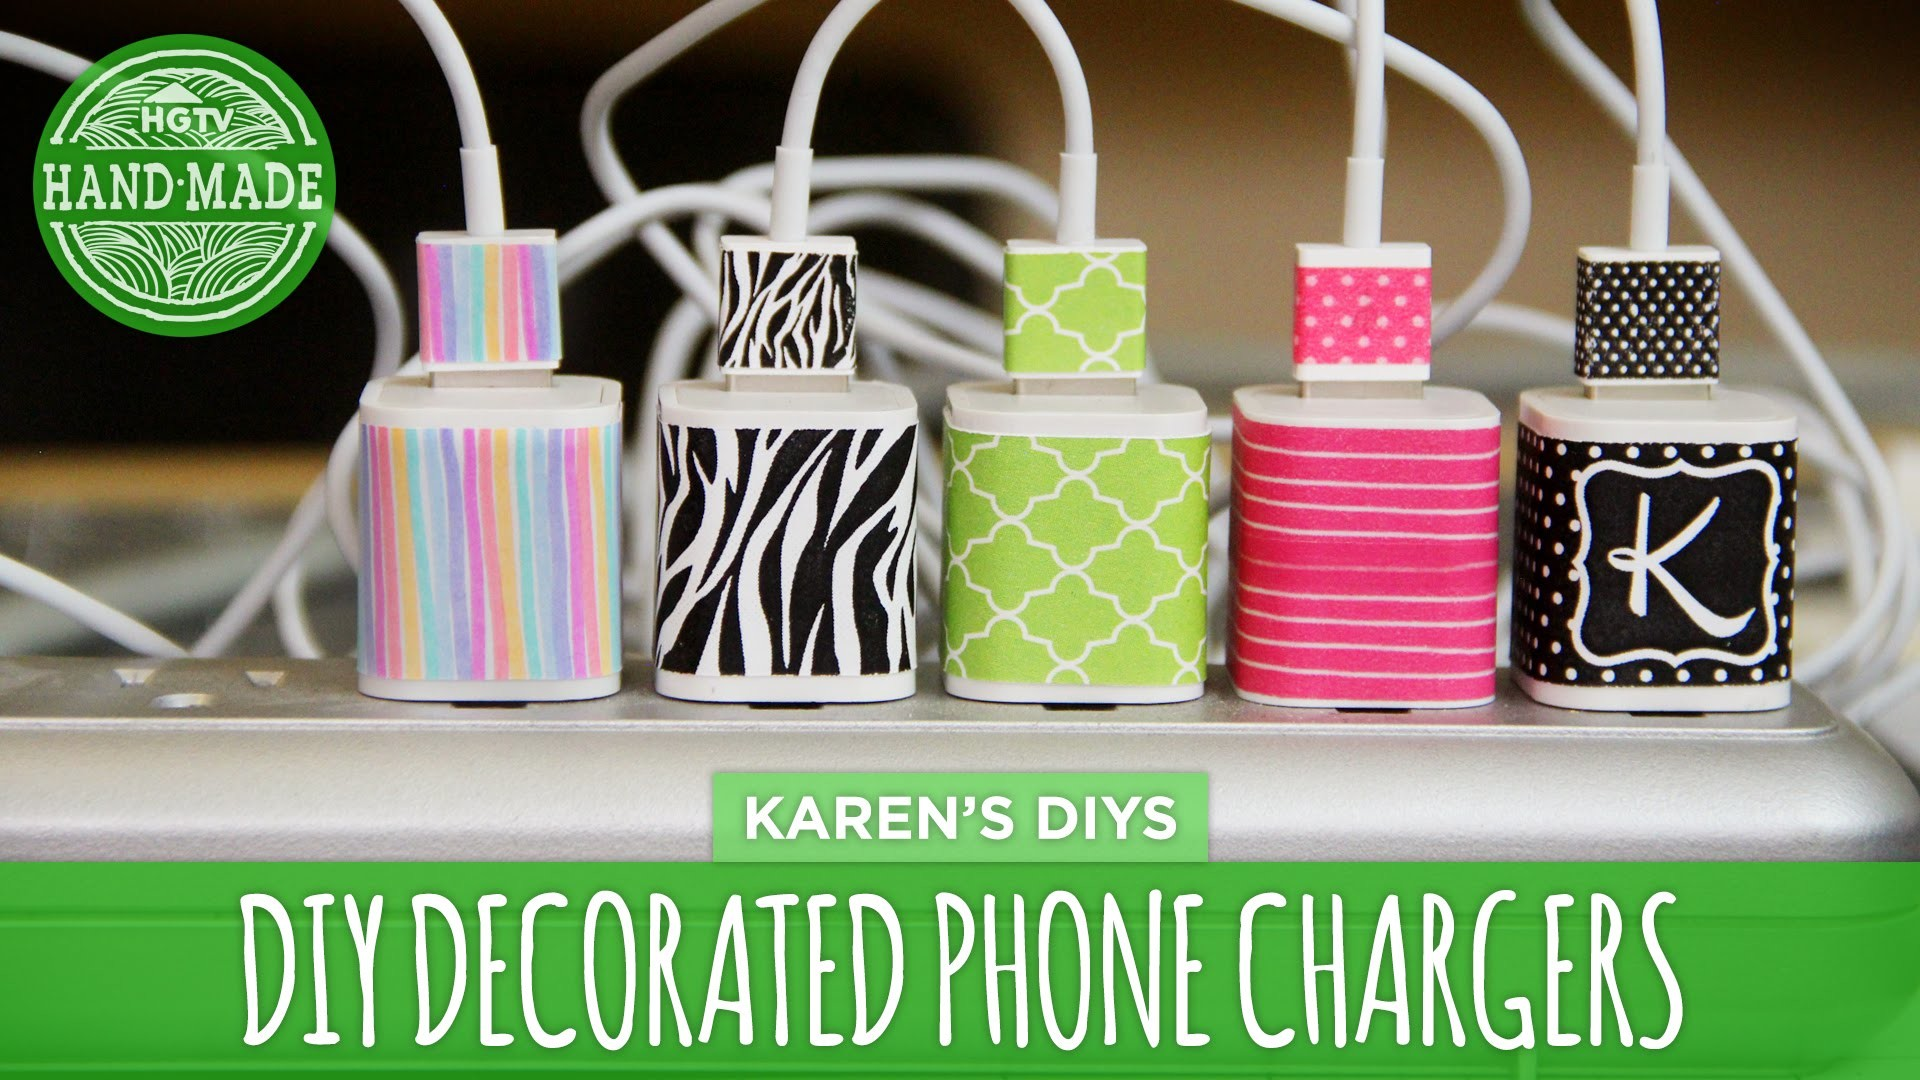 DIY Decorated Phone Chargers - HGTV Handmade